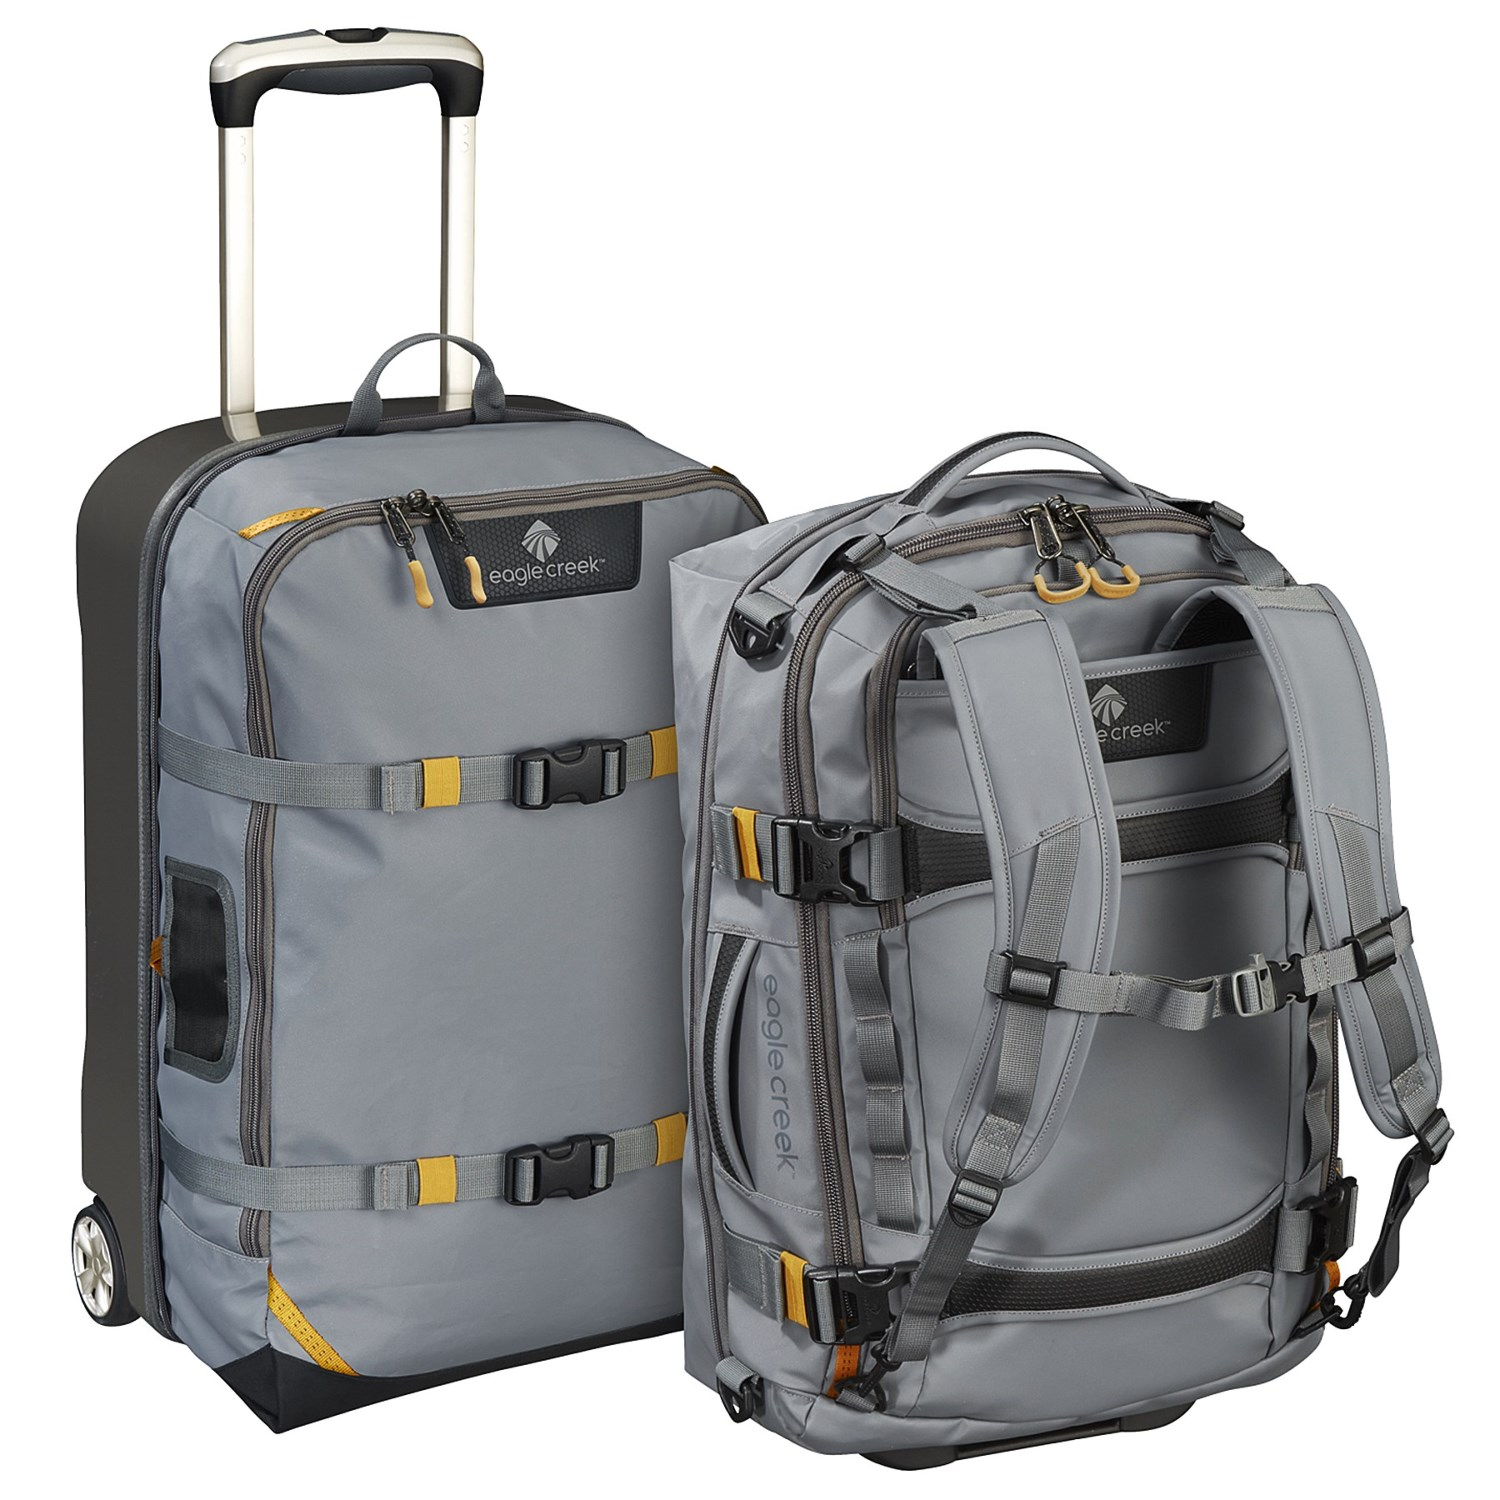 rolling luggage with backpack straps Backpack Tools